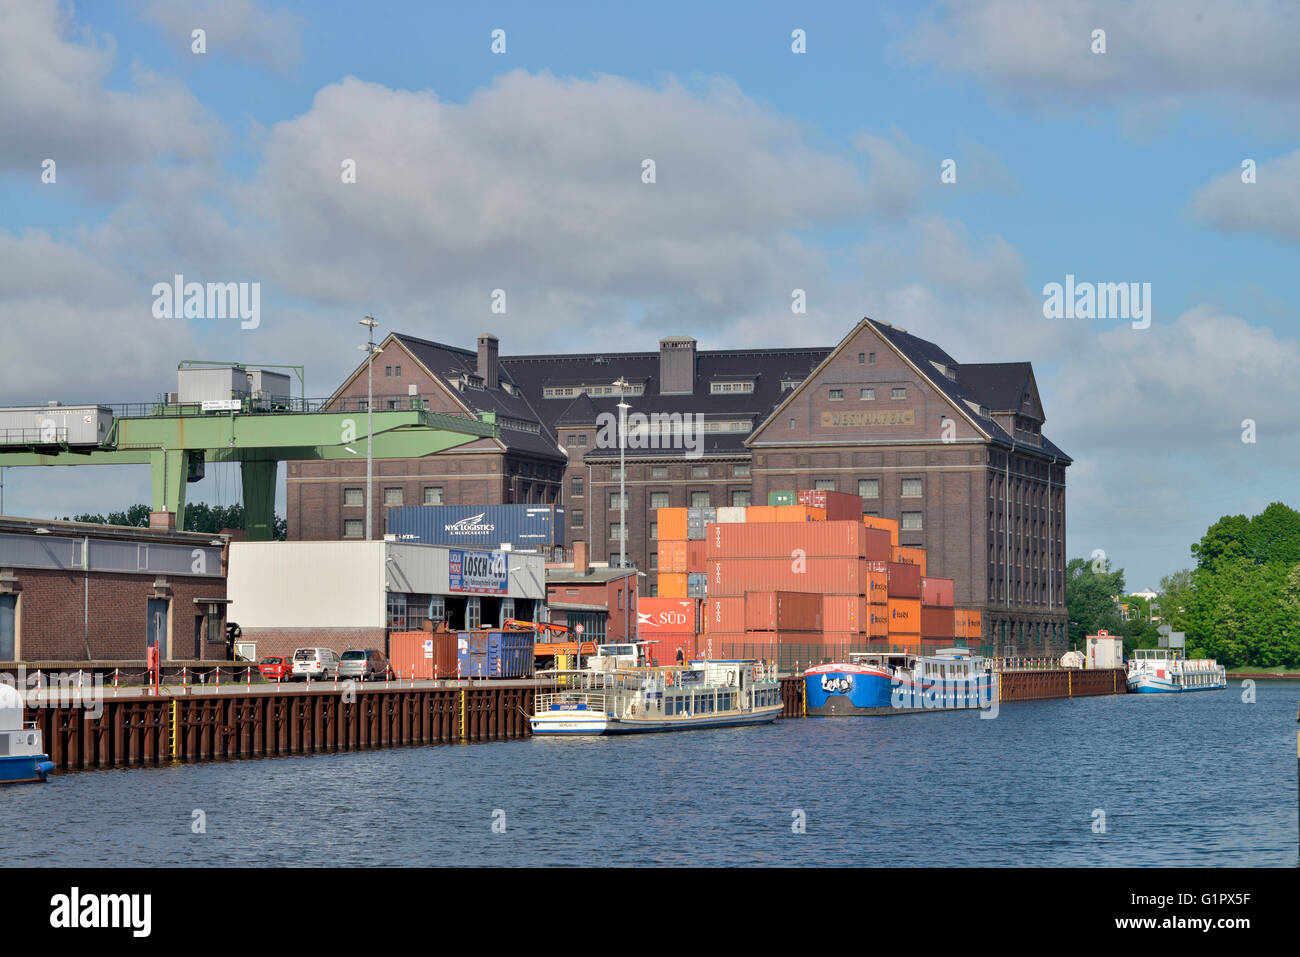 Lagerhaus, Behala, Westhafen, Berlin, Deutschland Stock Photo